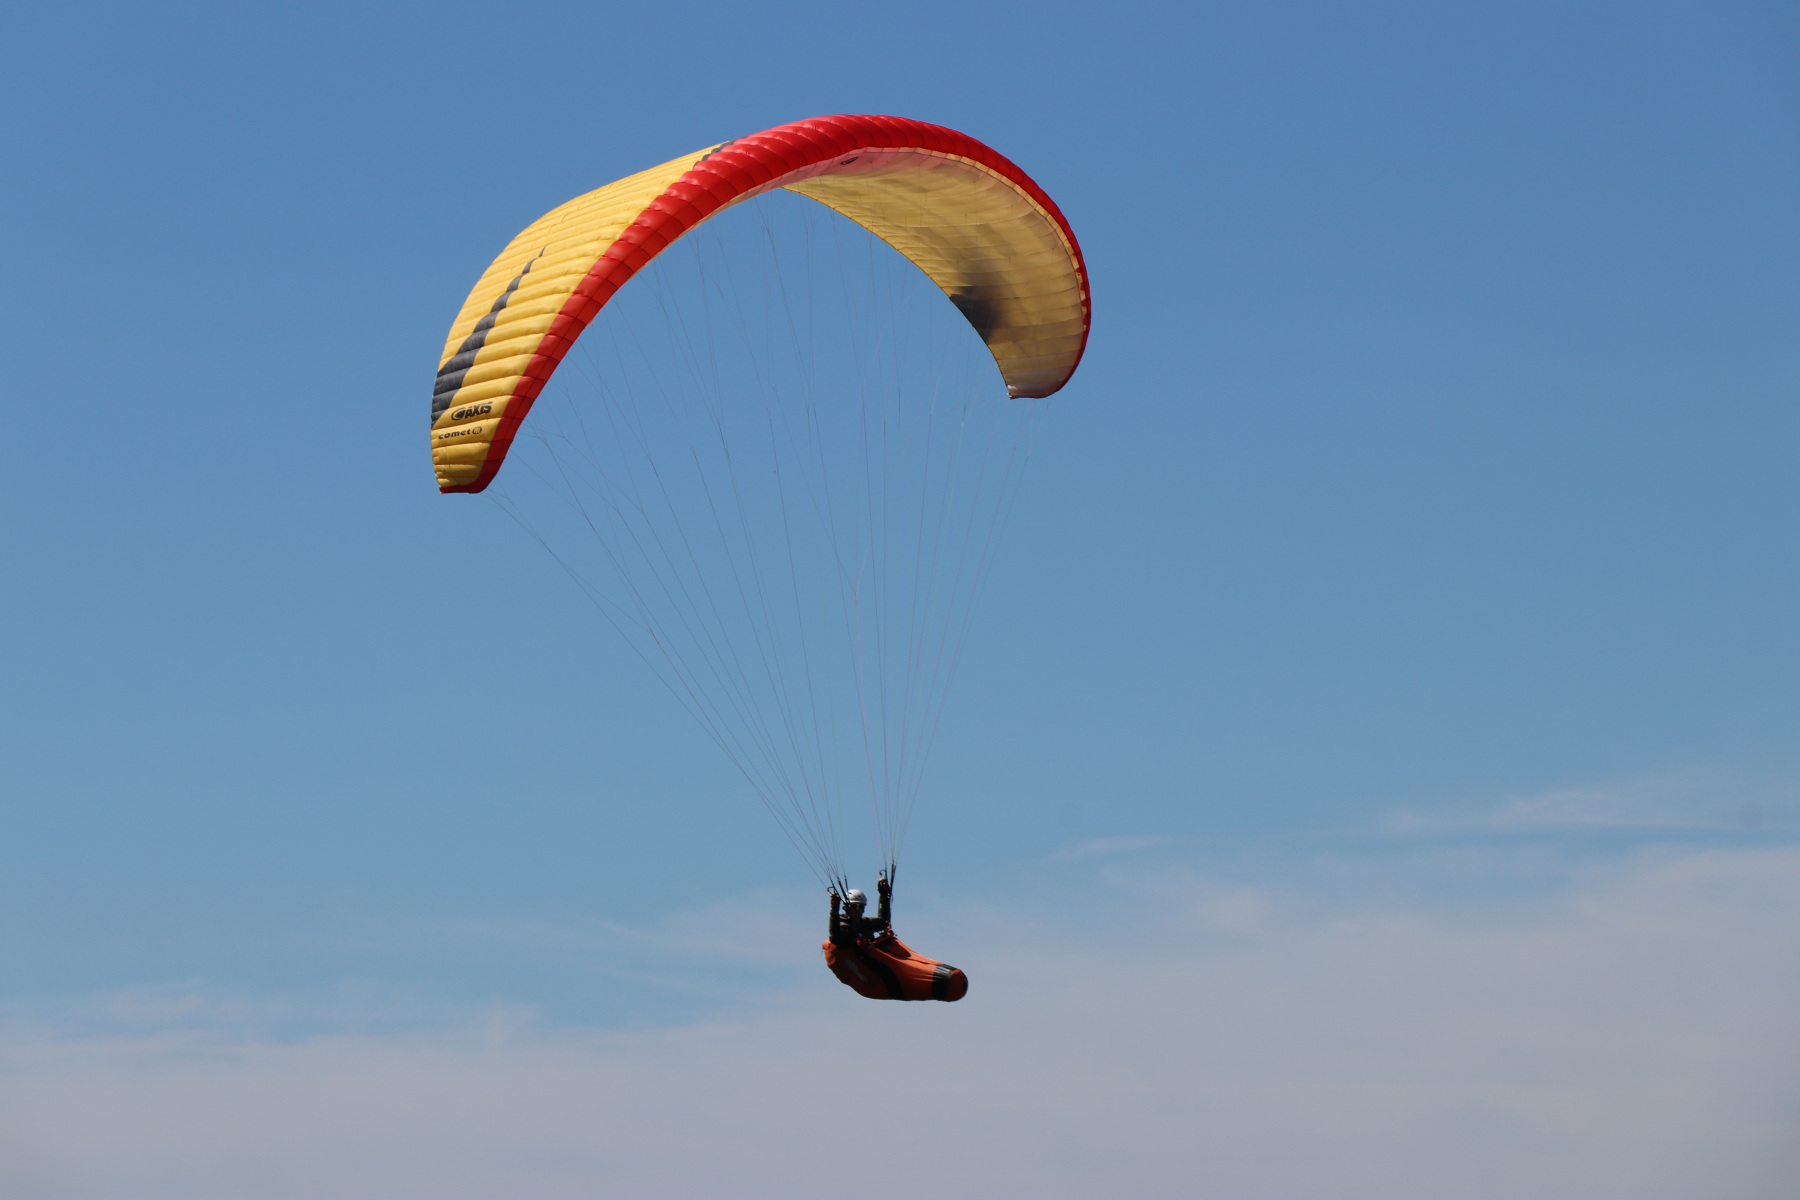 AXIS Comet3 paraglider for sale